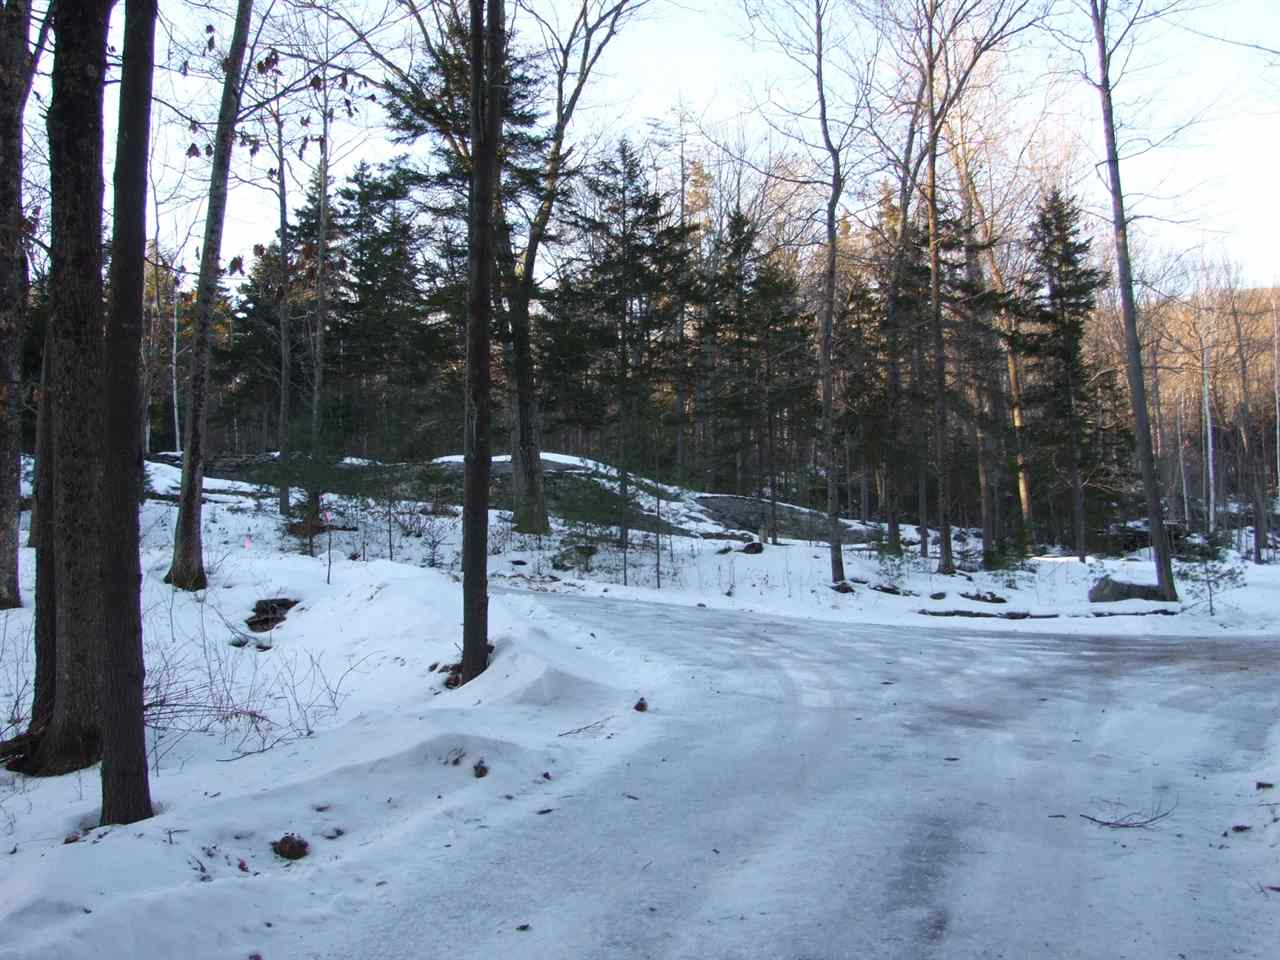 Wooded setting 11389656